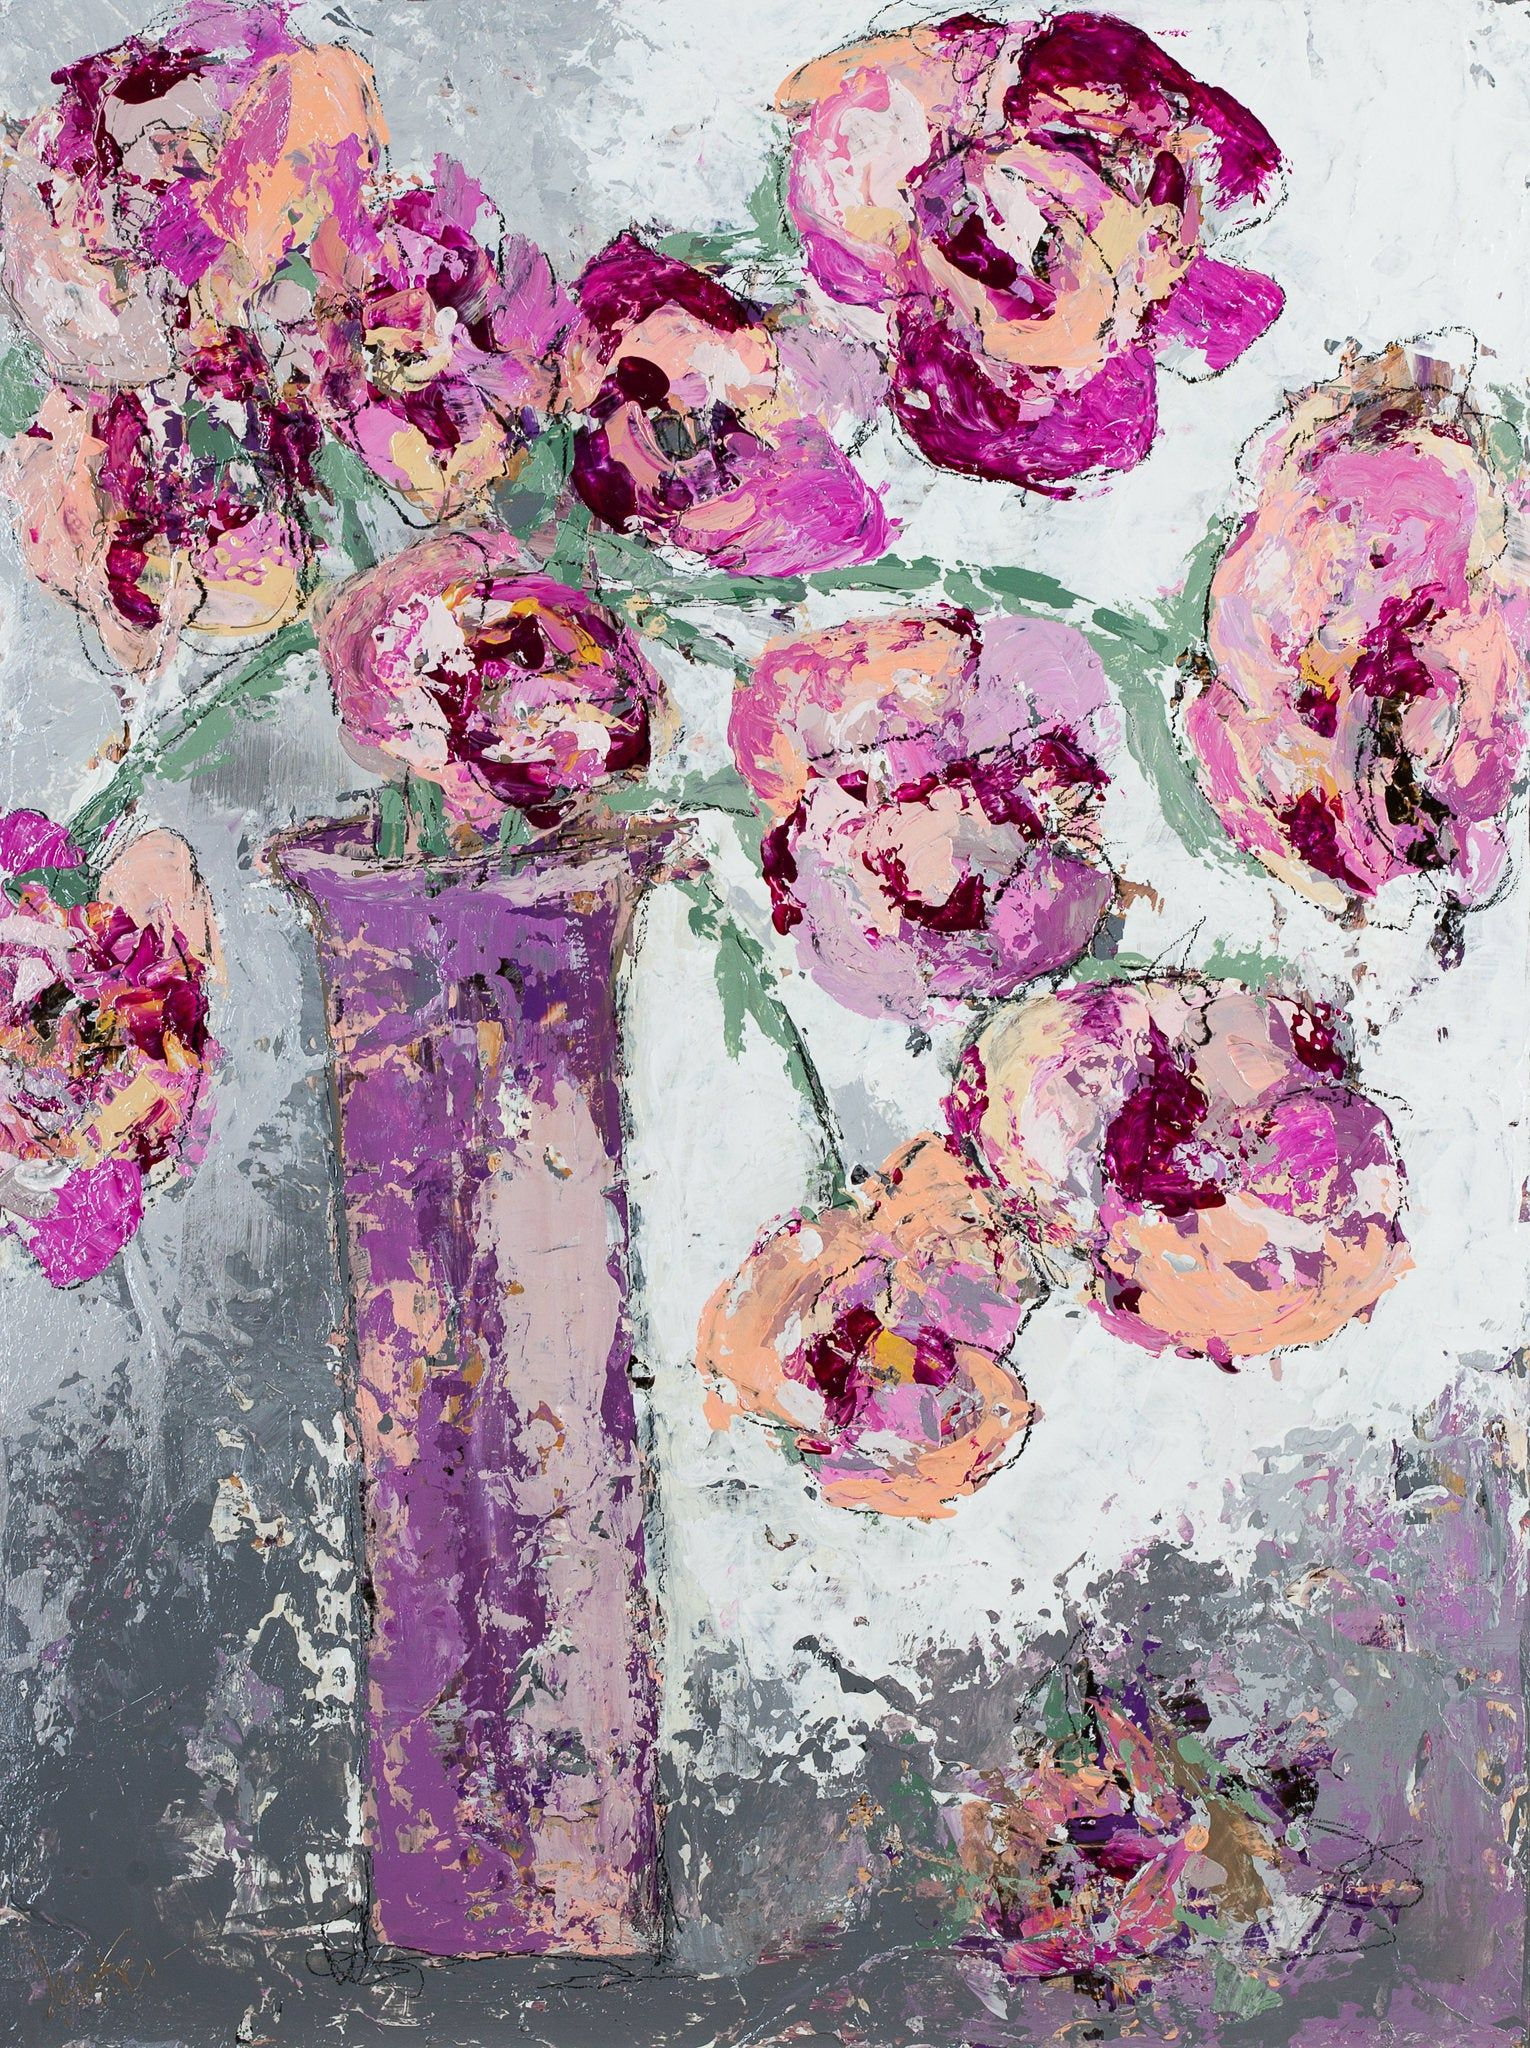 Flowers pink painting abstract art wishing and praying